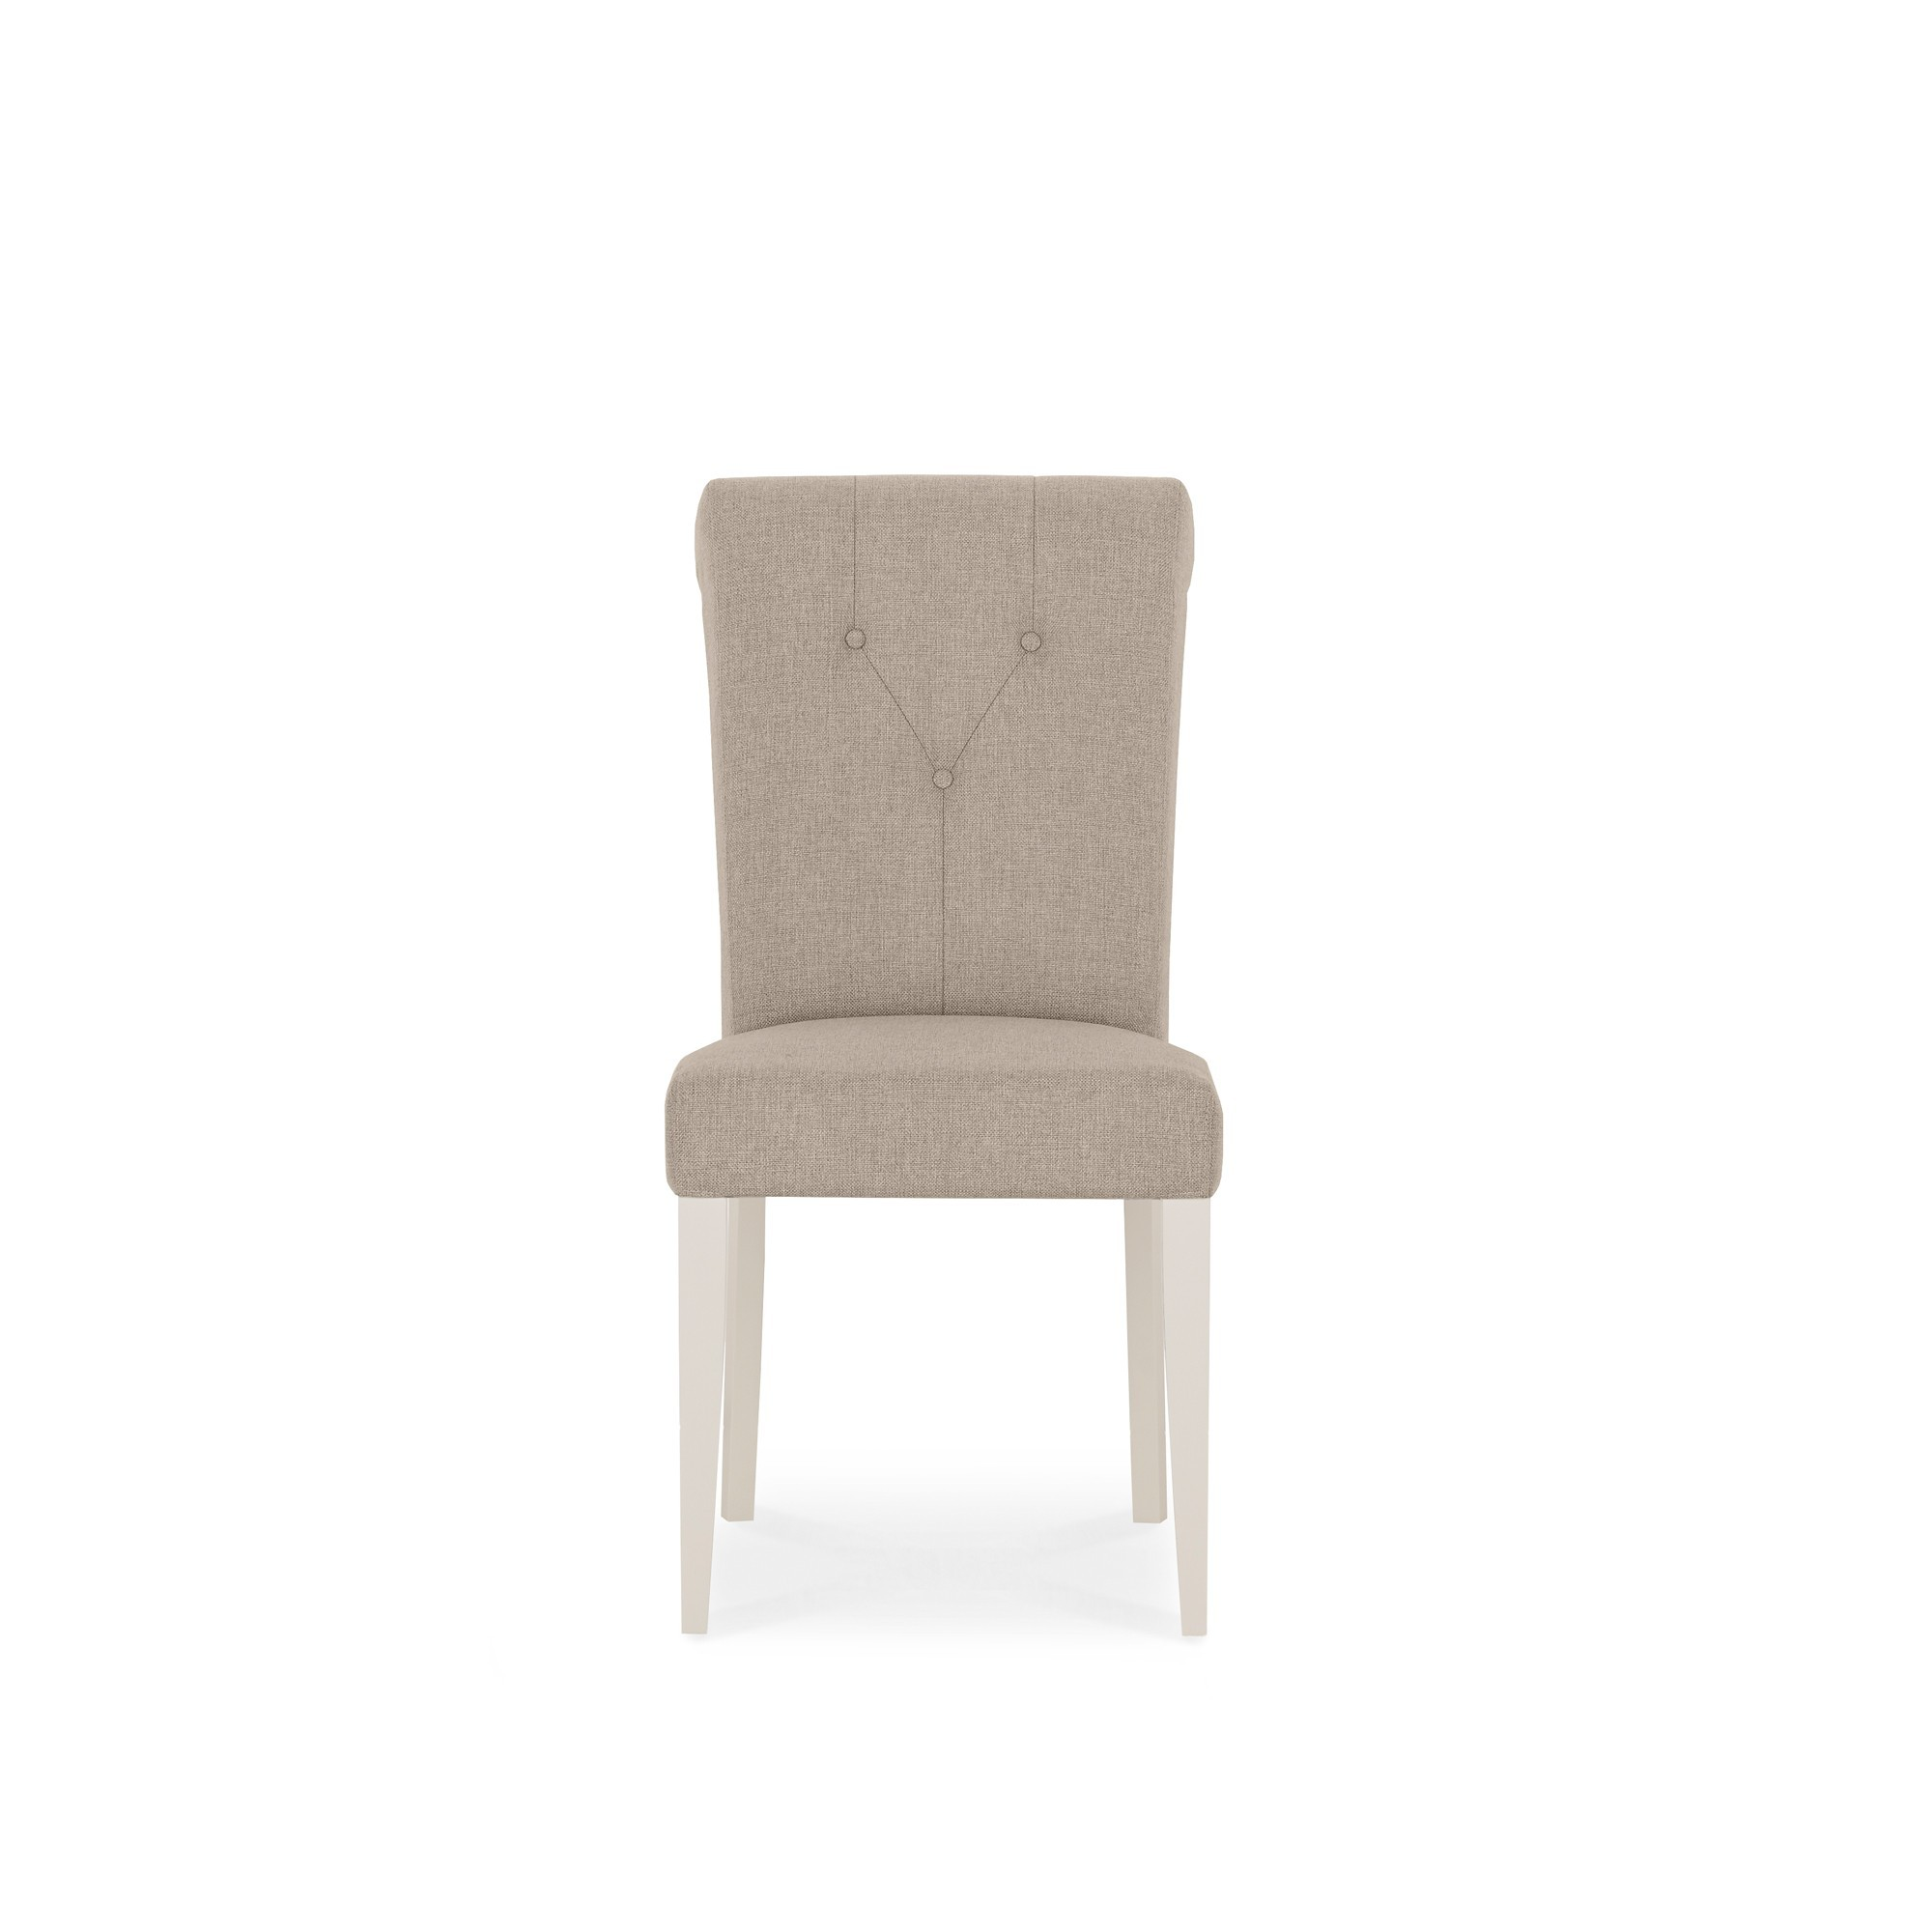 Cookes Collection Geneva Fabric Dining Chair. Loading zoom  sc 1 st  Cookes Furniture & Cookes Collection Geneva Fabric Dining Chair - Dining Furniture ...